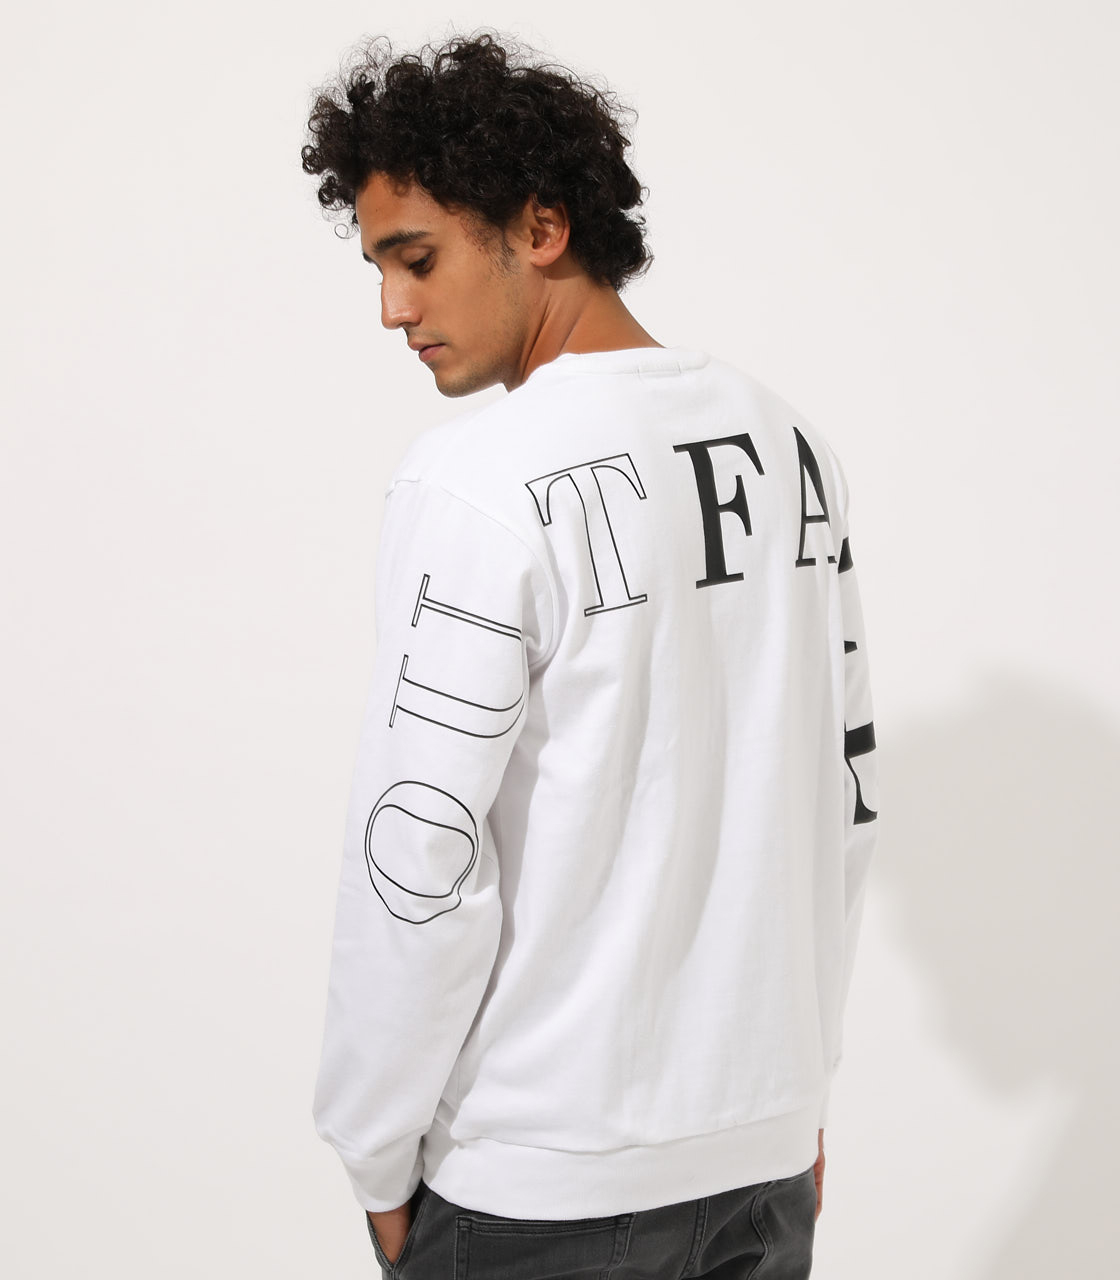 OUTFACE PRINT PULLOVER/アウトフェイスプリントプルオーバー 詳細画像 WHT 1